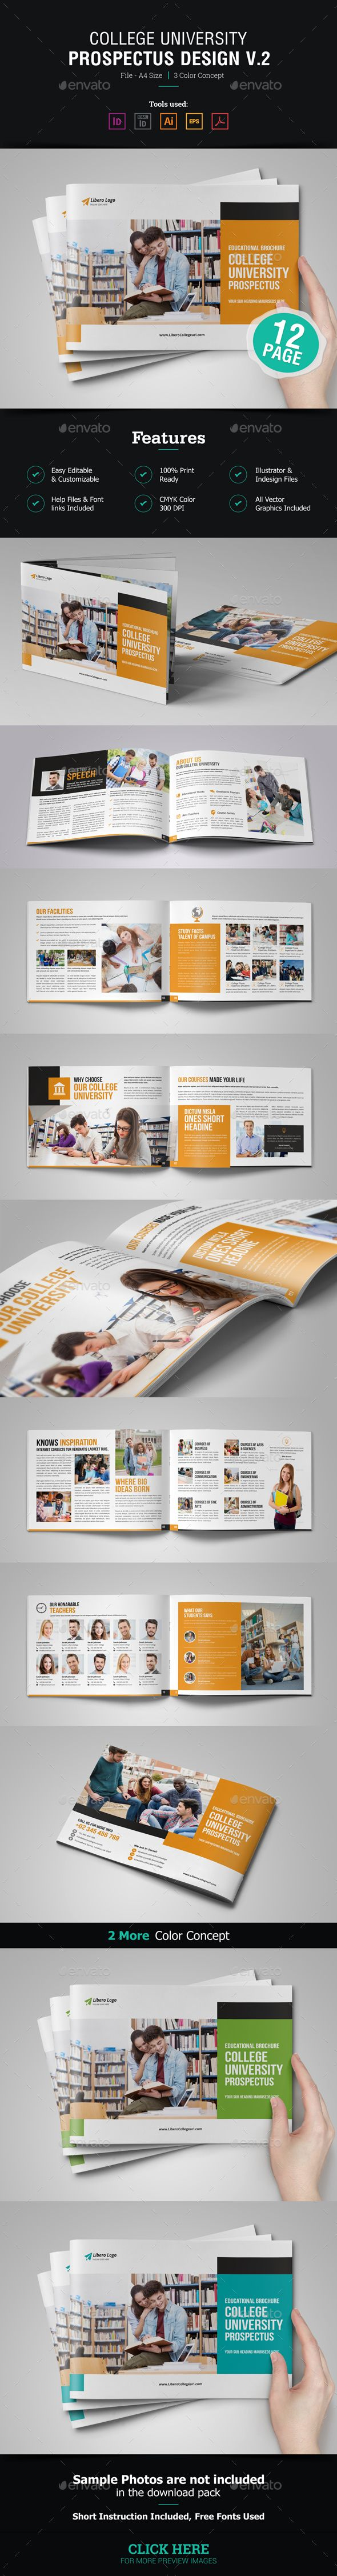 College University Prospectus Brochure Design V  Brochures